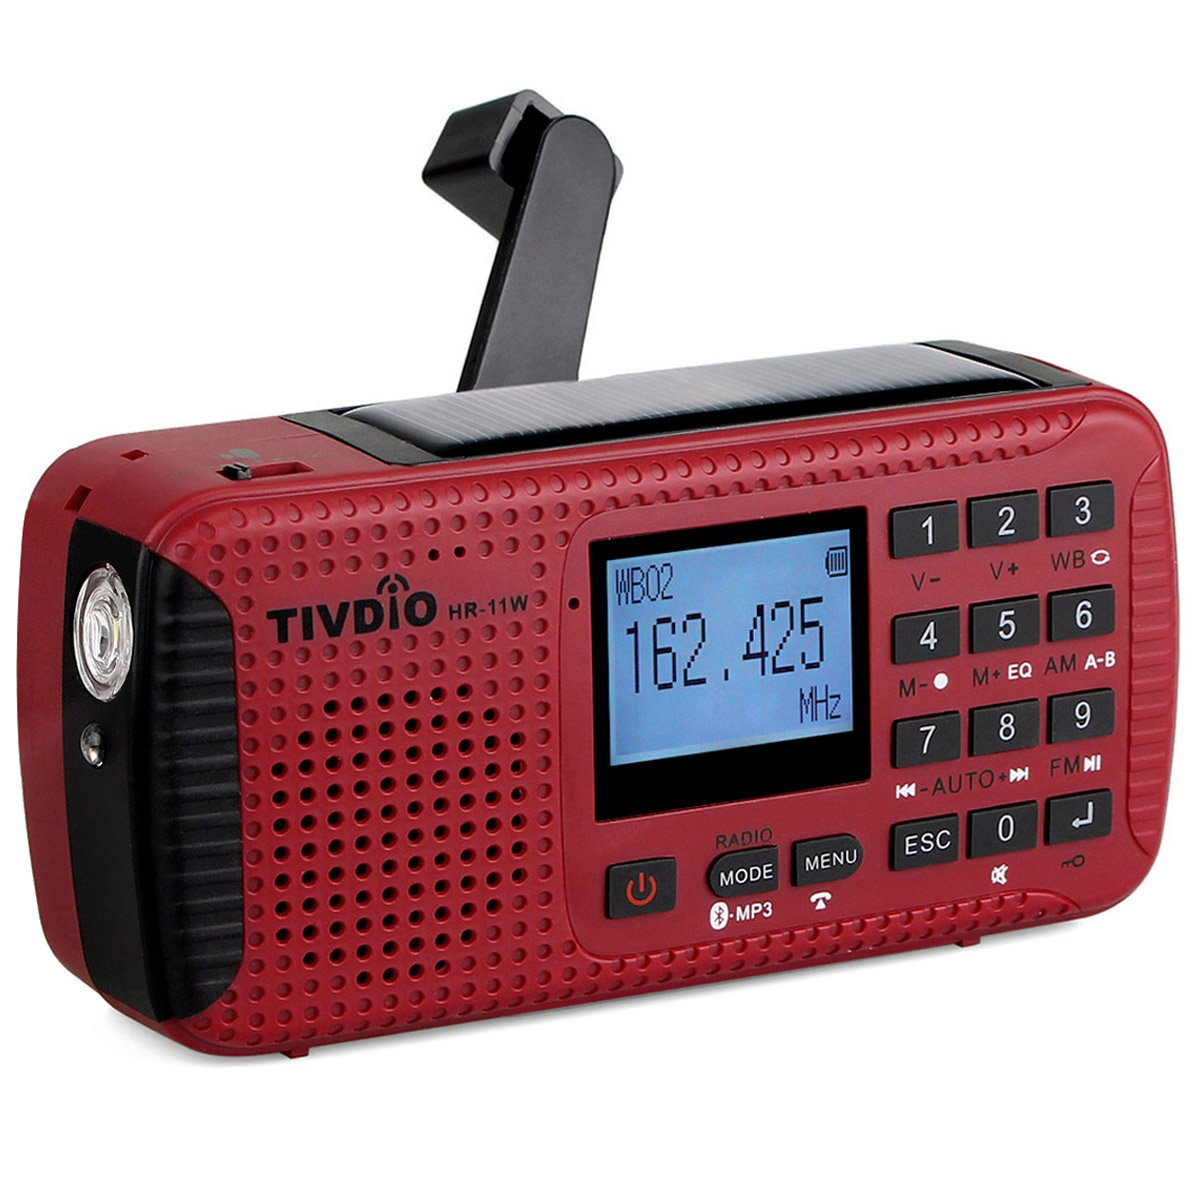 TIVDIO HR-11W NOAA Weather Alert Radio Alarm with Emergency Radio AM FM Solar Hand Crank Camping Red SOS Light Flashlight Wireless TF Card Speaker Digital Recorder Phone Charger(Red)